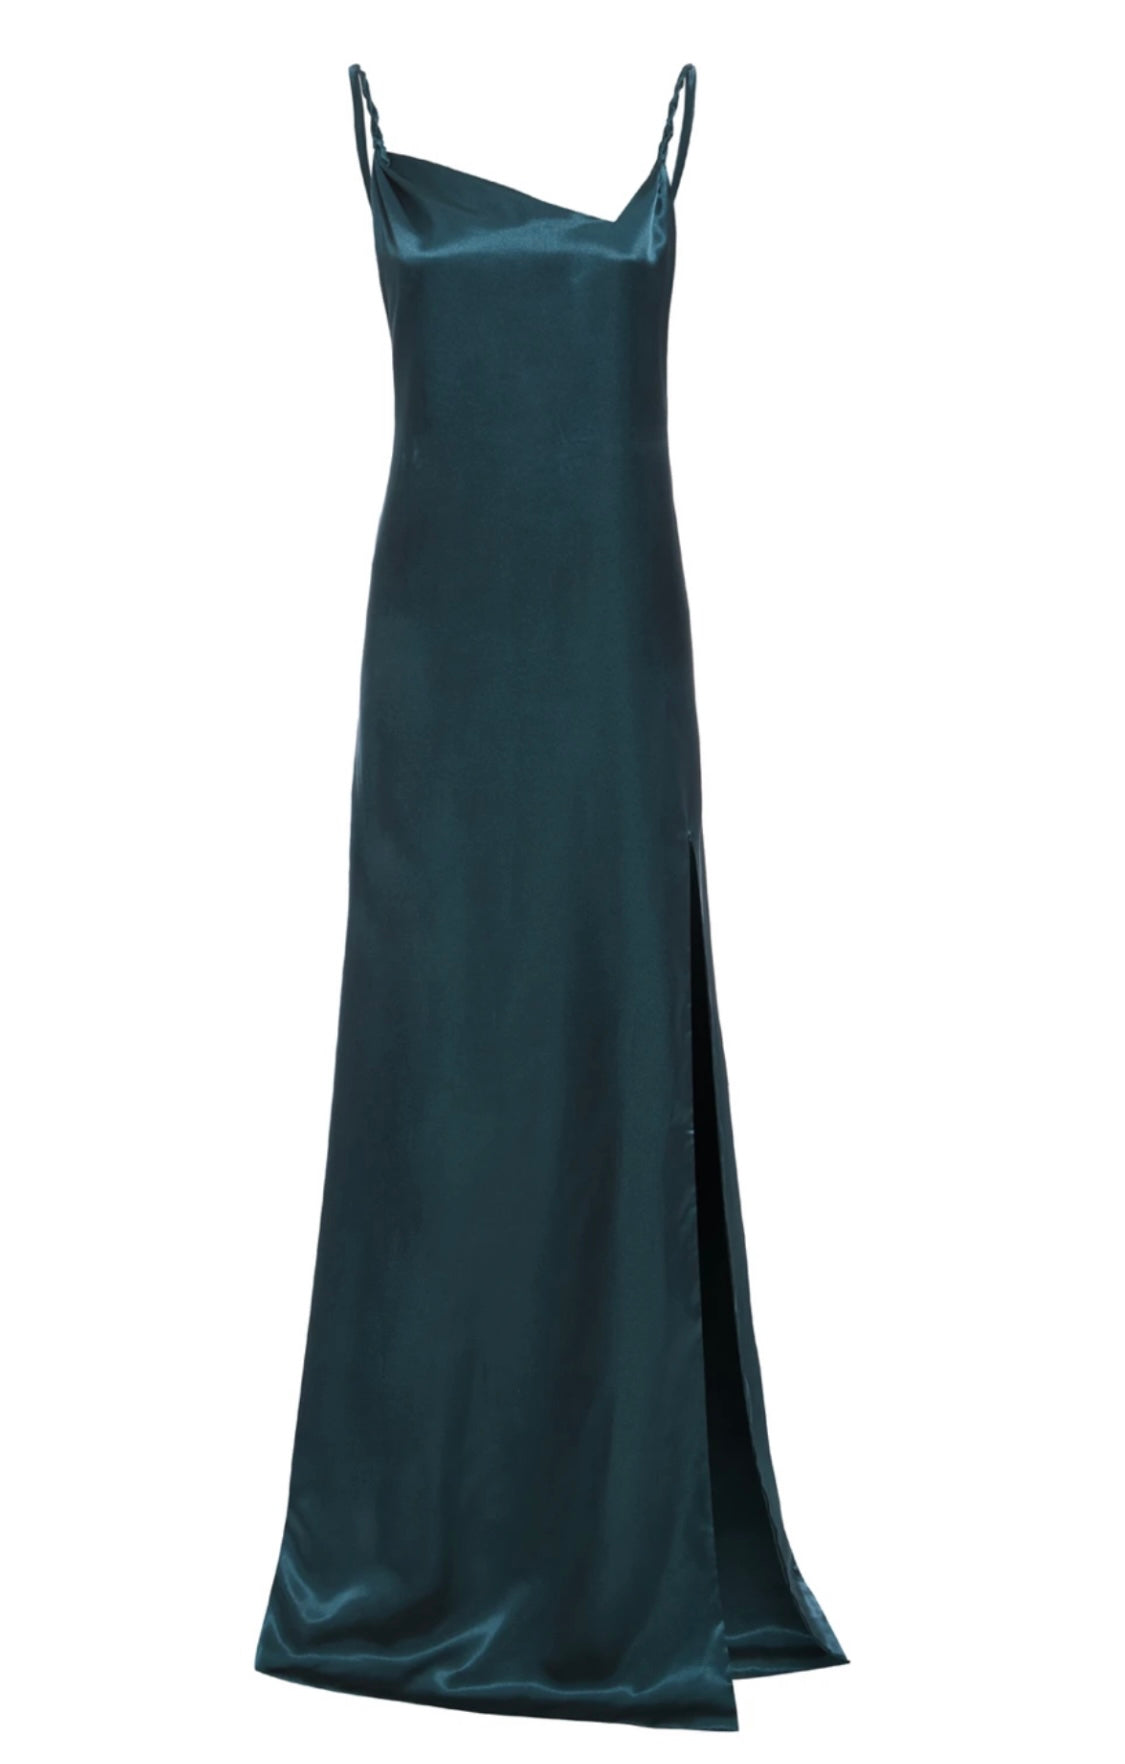 https://sarvin.co.uk/products/rosie-satin-slip-maxi-dress-emerald?_pos=1&_sid=efe09ebe6&_ss=r